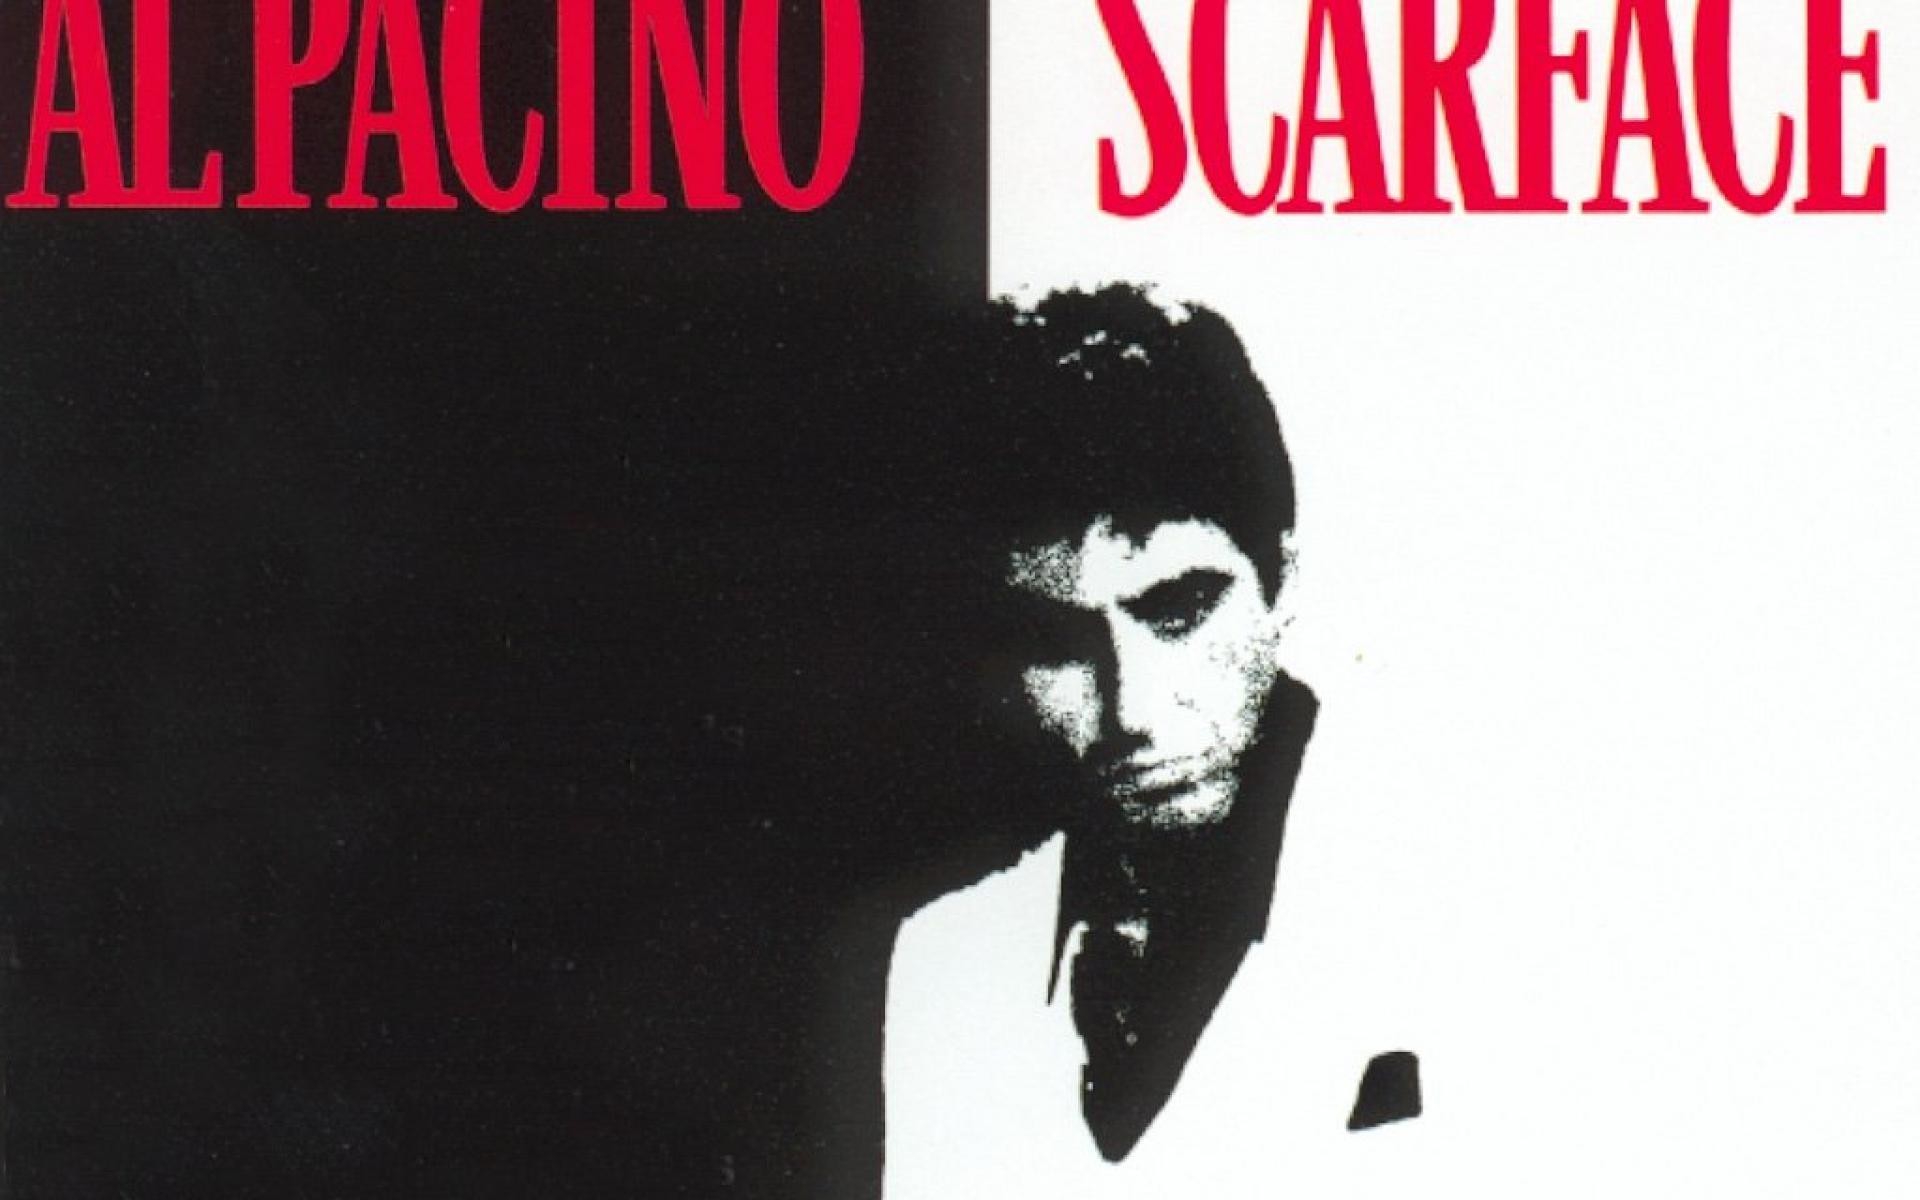 scarface hd wallpaper 58 images